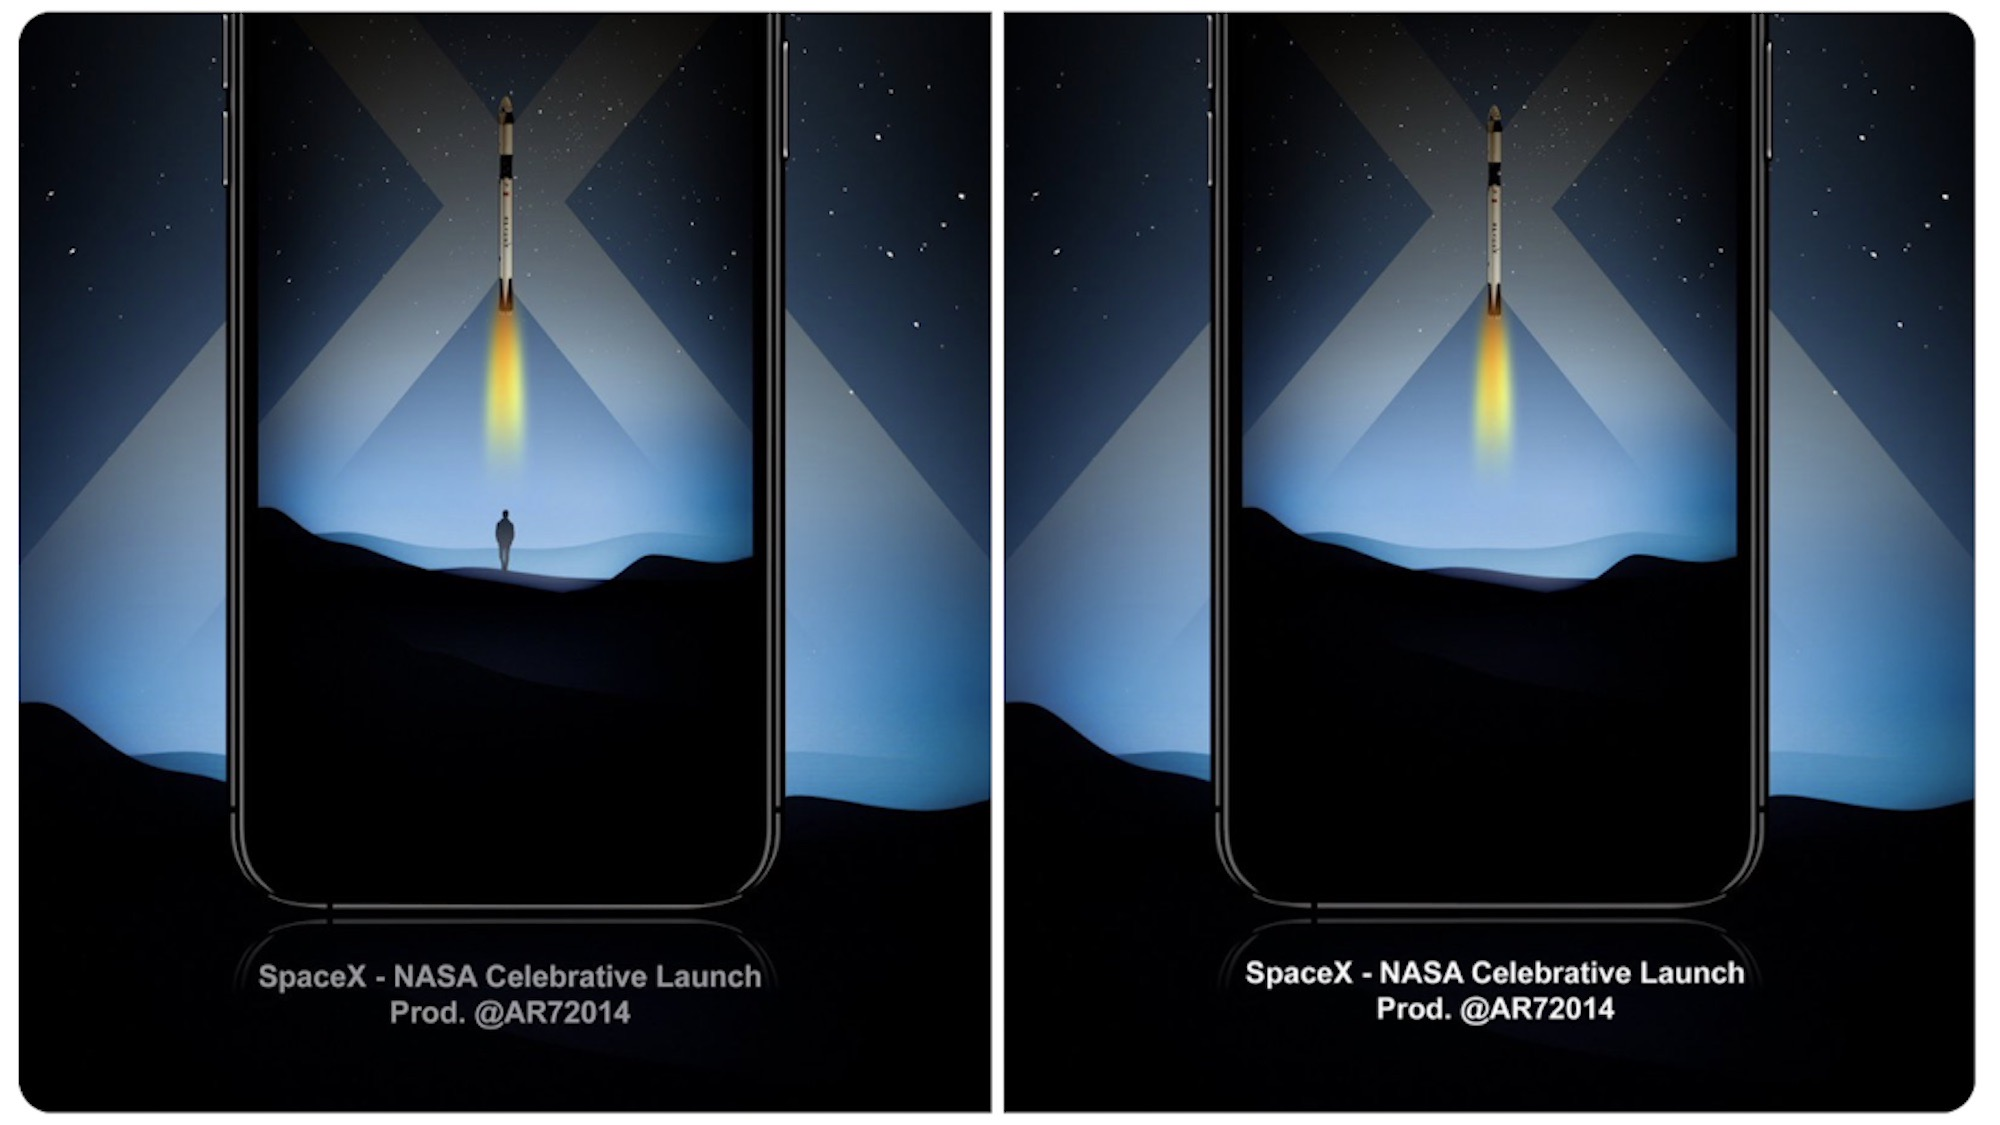 photo of iPhone wallpapers from designer 'AR7' celebrate historic SpaceX NASA astronaut launch image